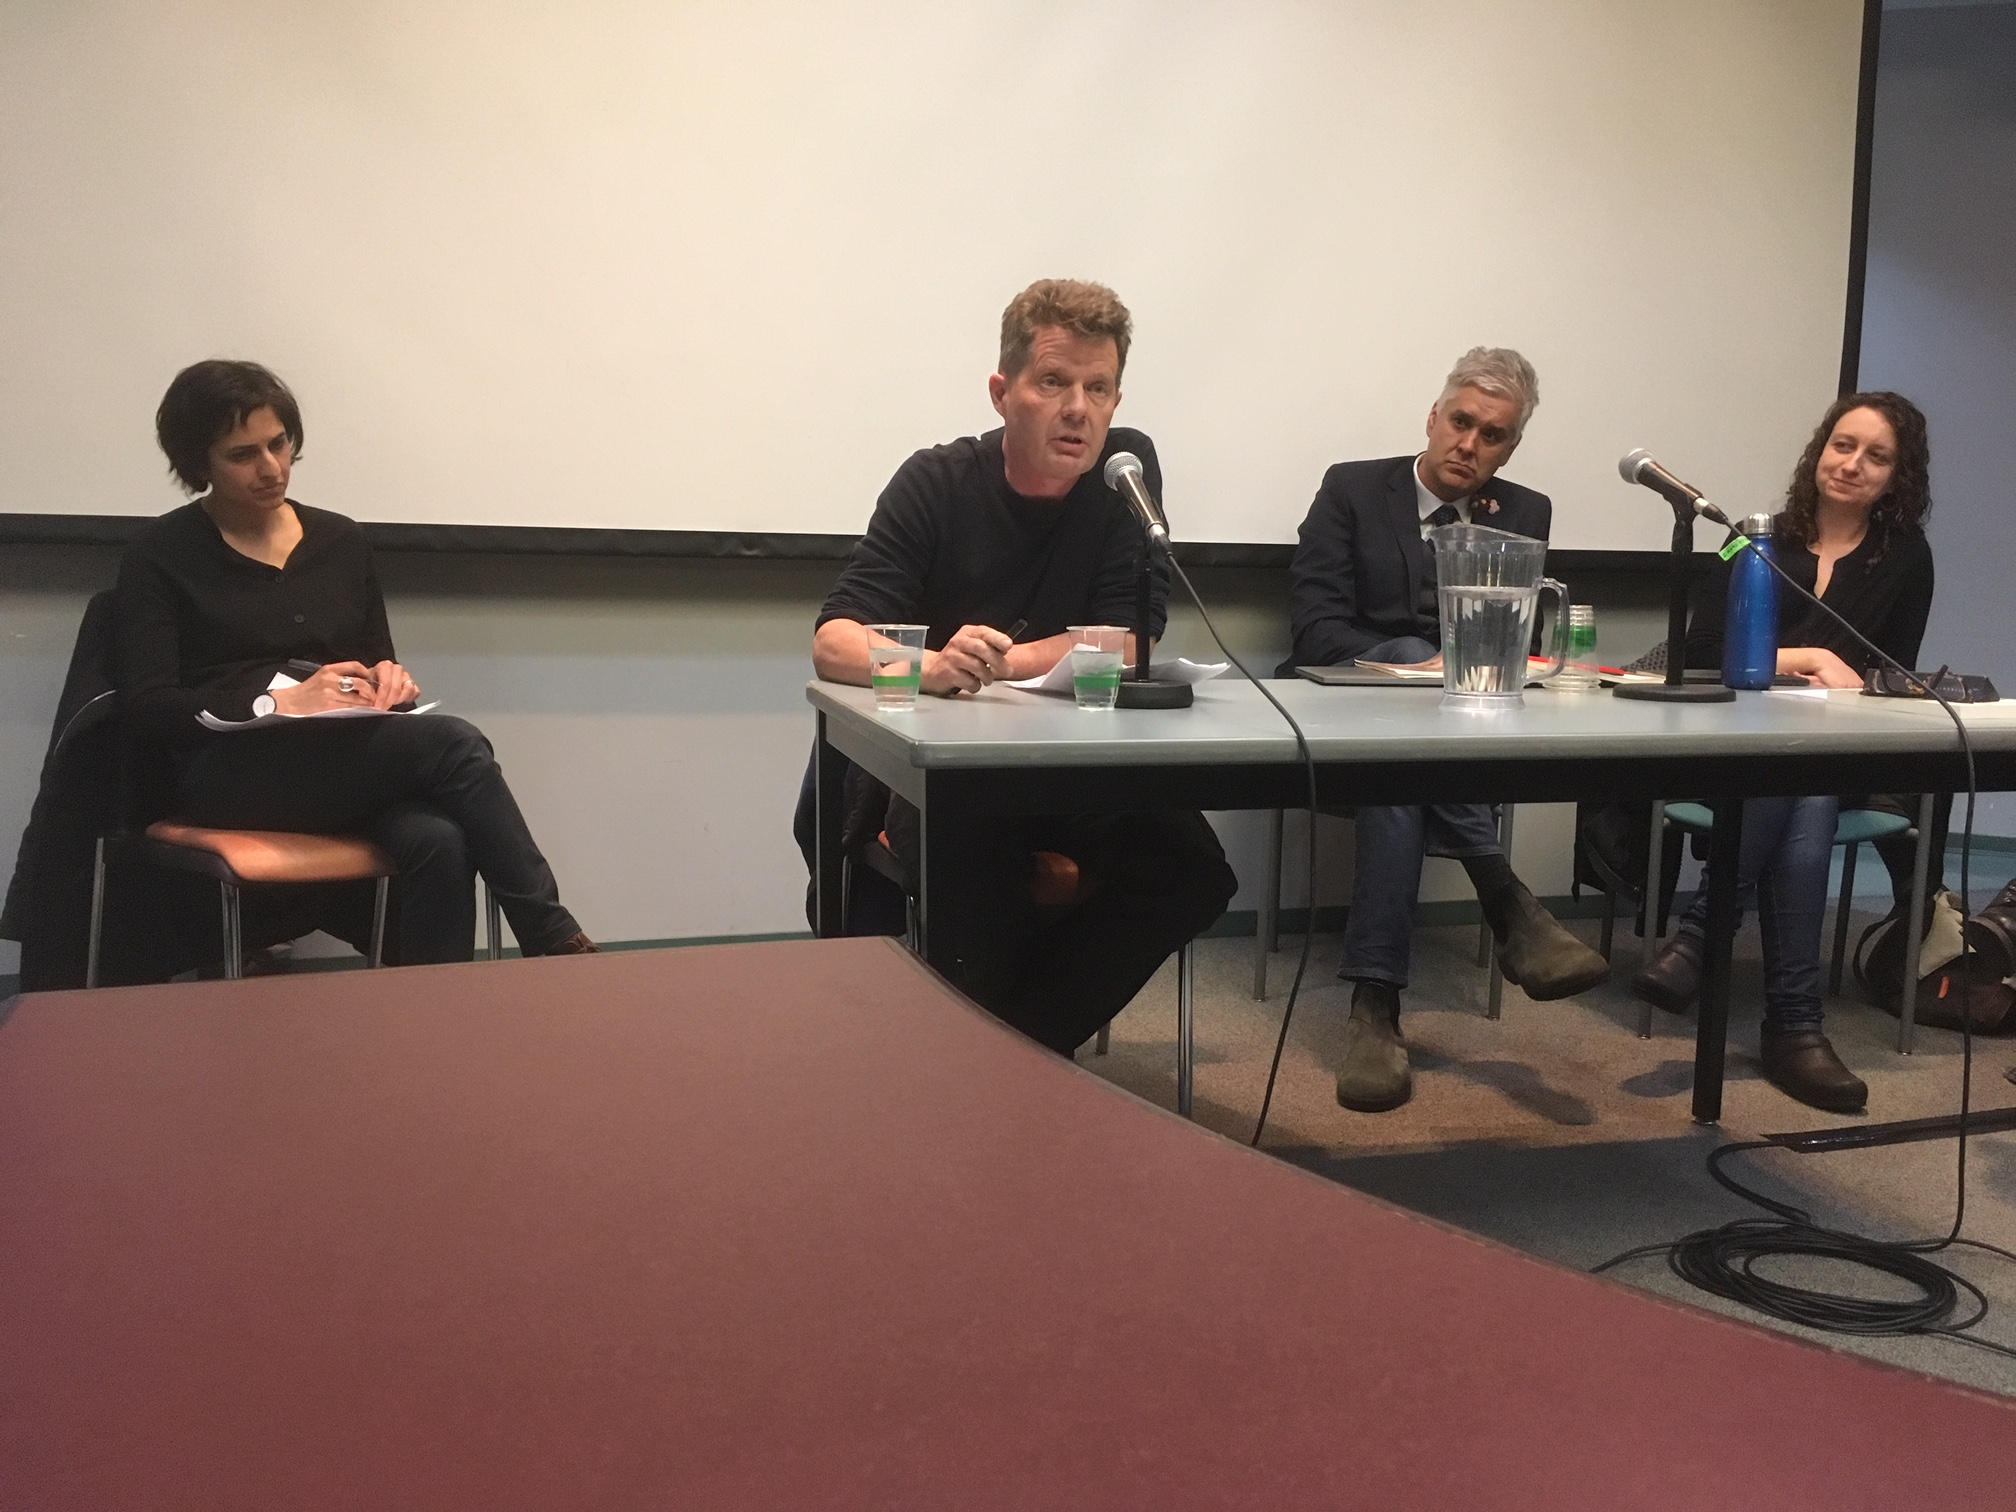 Colonial Lives of Property Panel - SFU Harbour Centre - April 9, 2019 (1).JPG